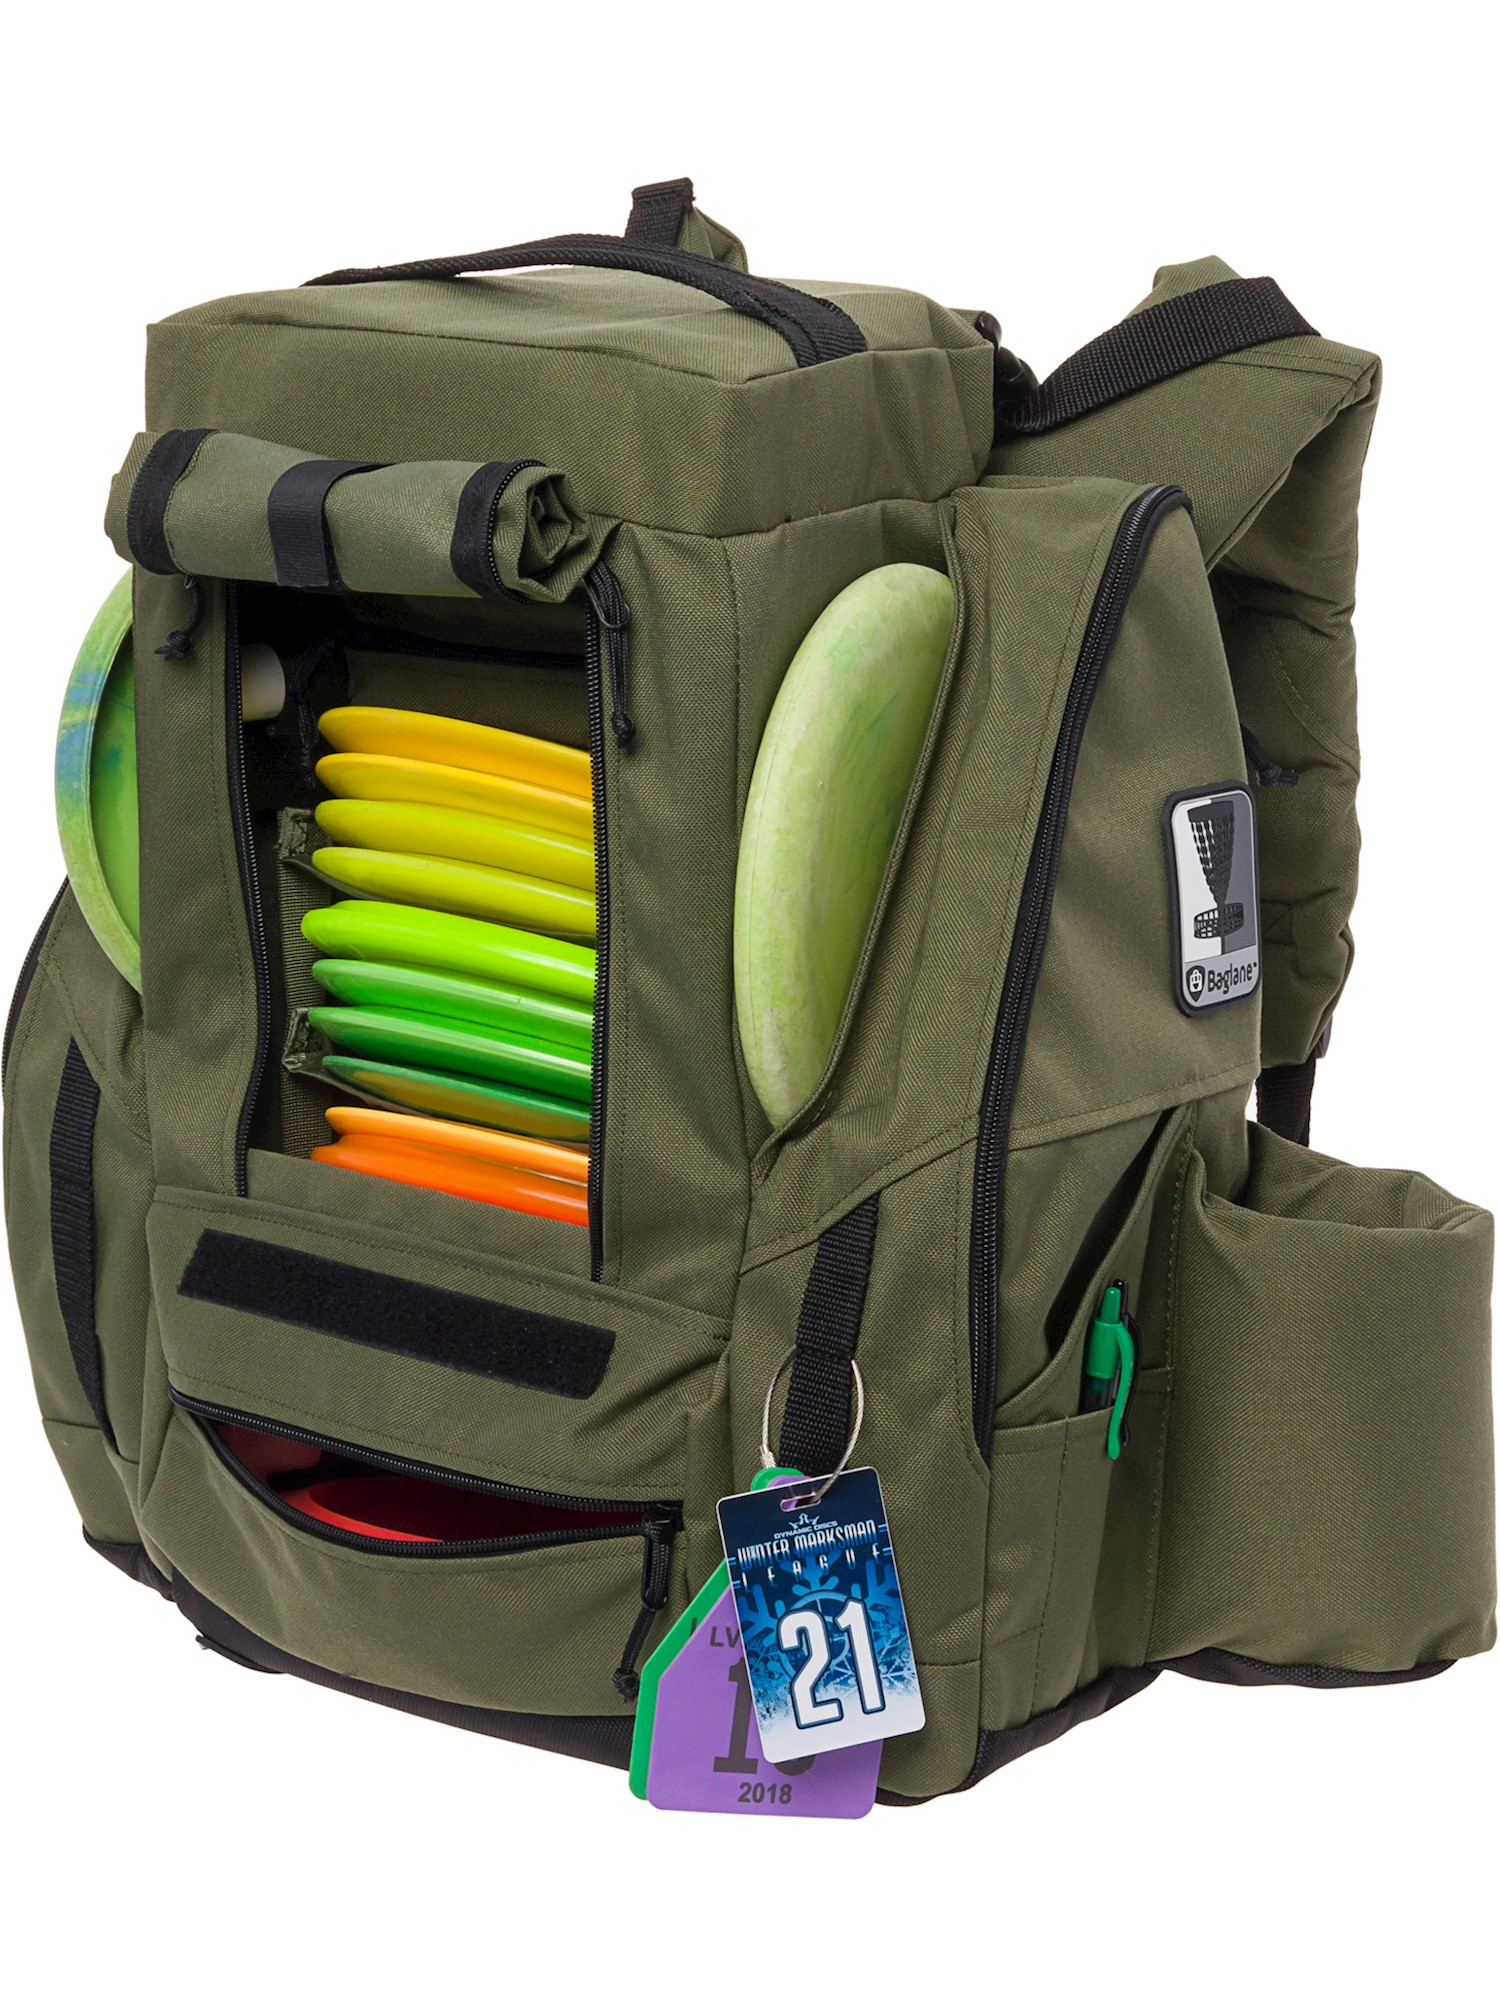 Fusion Pro Fusion Pro 25 Disc Capacity Disc Golf Frisbee Backpack Bag W Built In Seat